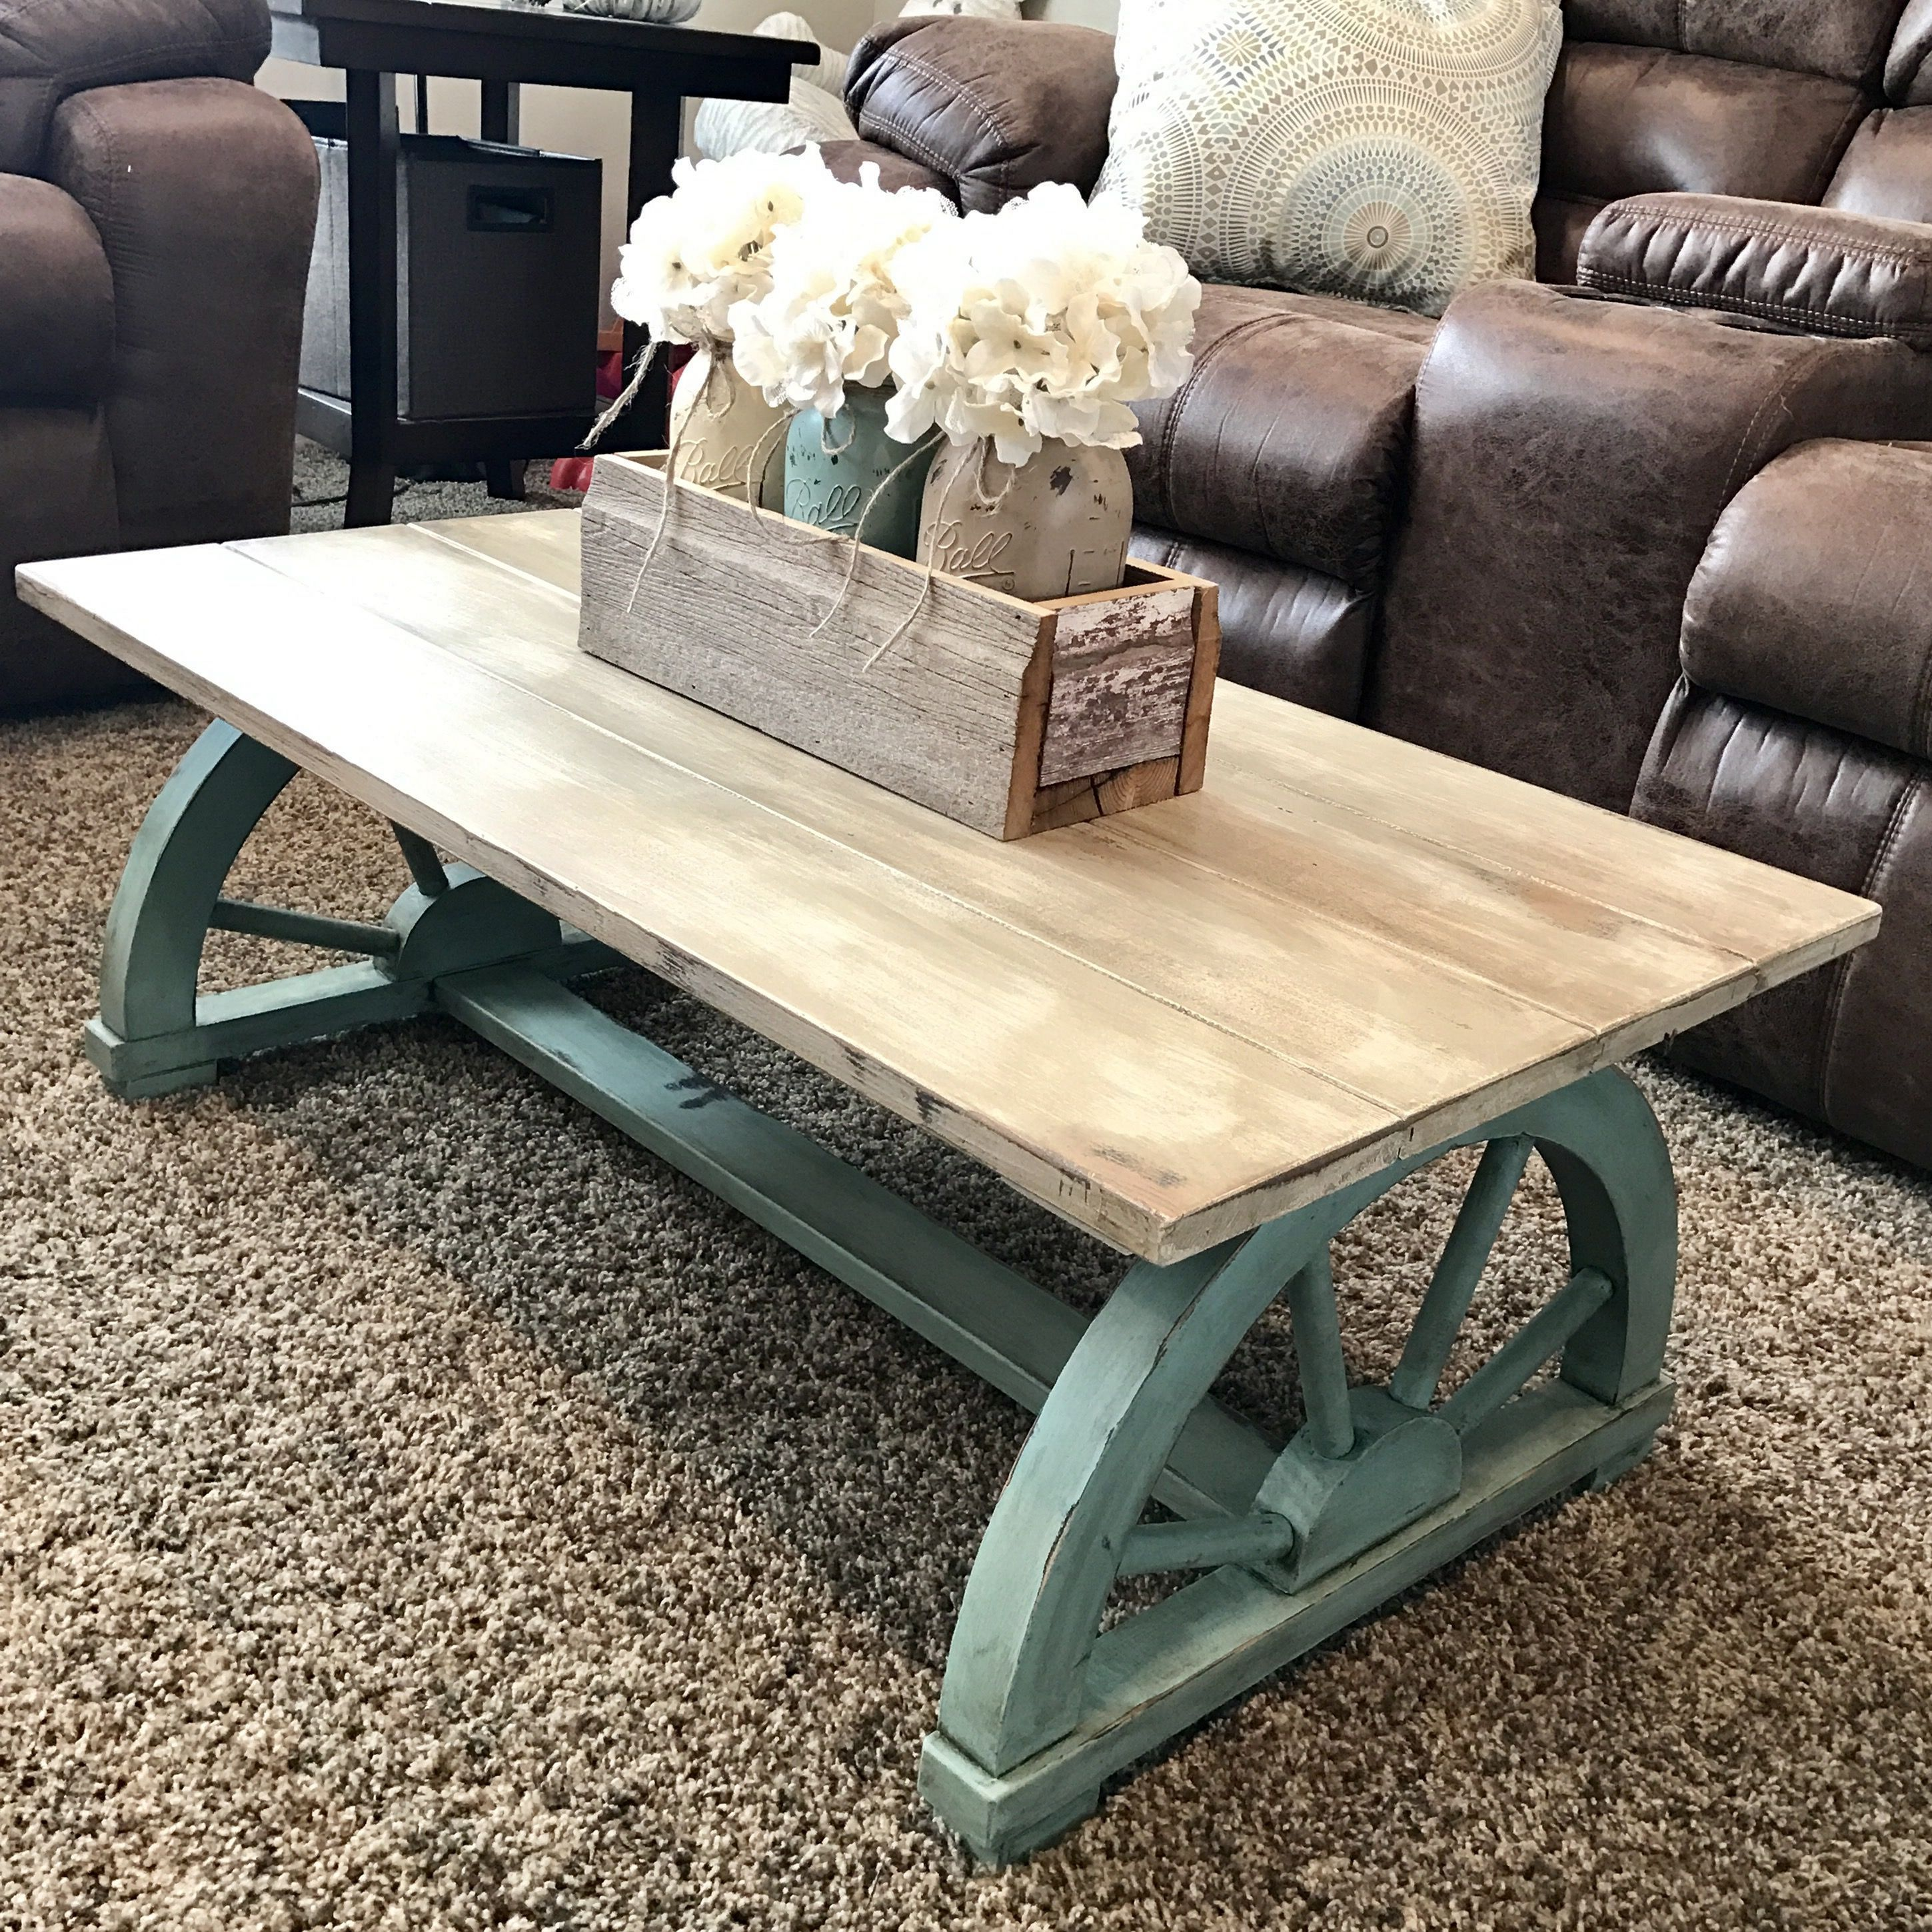 25 Great Farmhouse Coffee Table Design And Decor Ideas Home Decor Rustic Country Painted Coffee Tables Vintage Home Decor